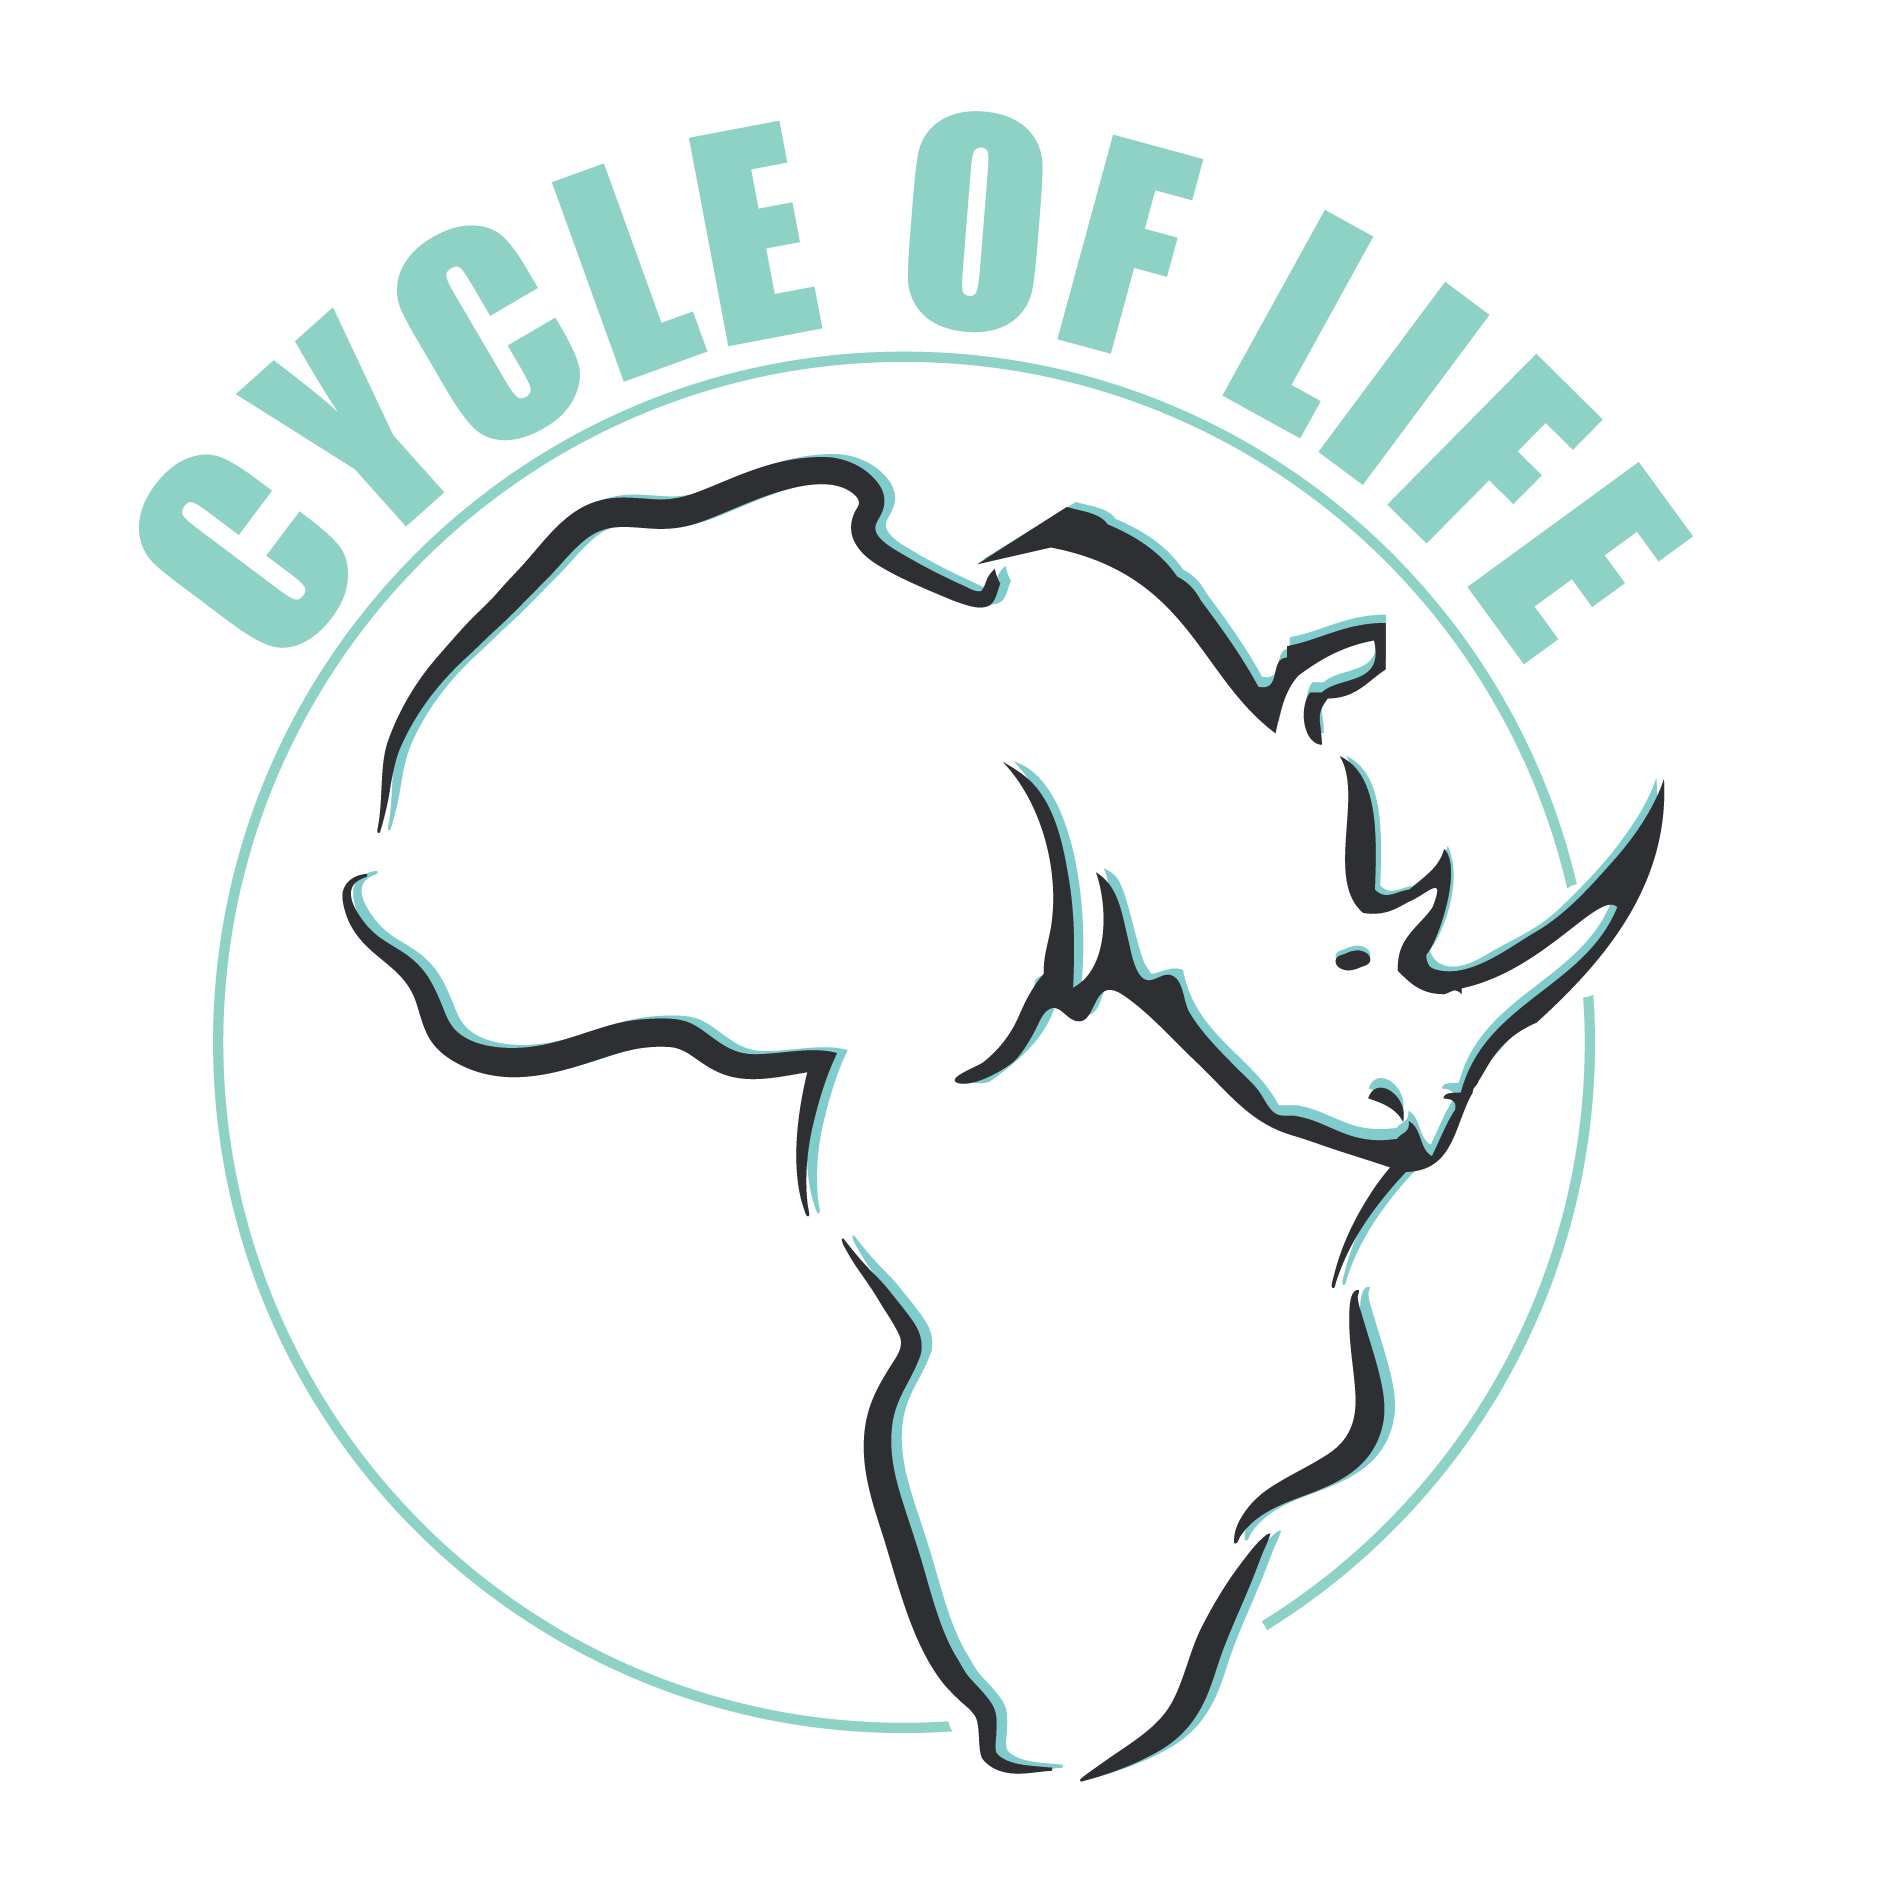 Cycle of life logo 01